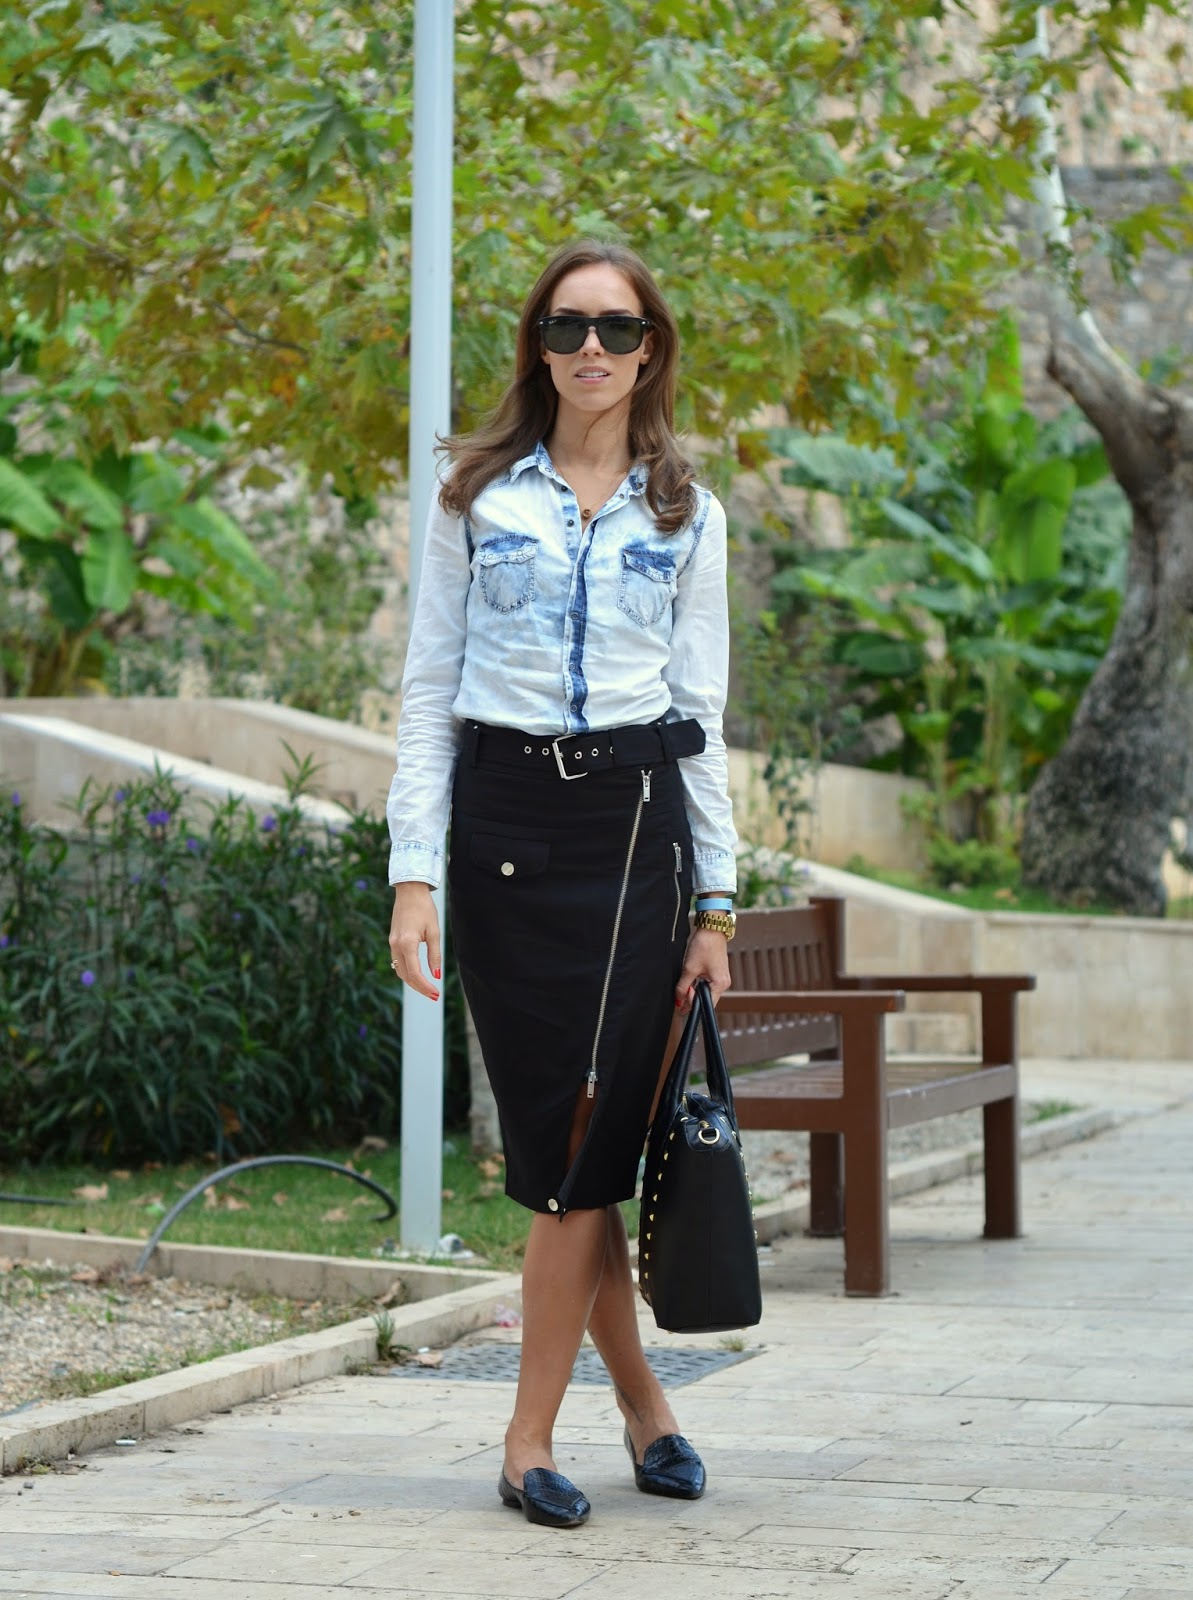 classic-work-outfit-denim-shirt-pencil-skirt-flats kristjaana mere